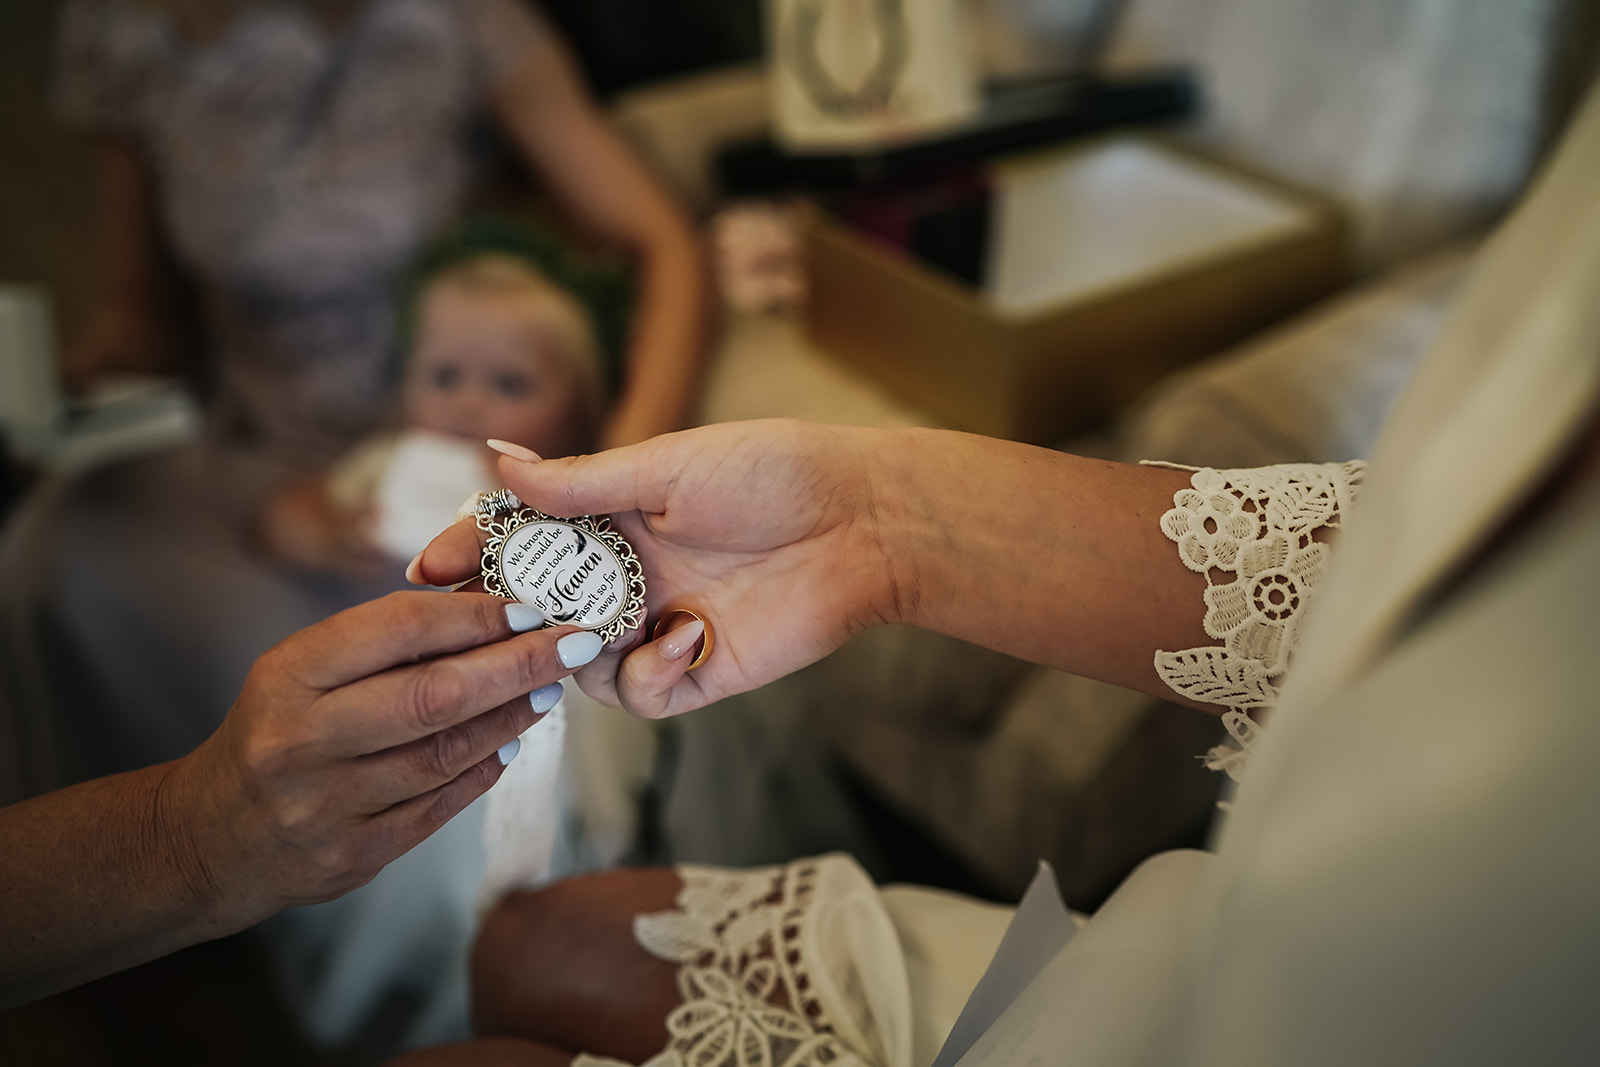 Charm given to bride on her wedding day